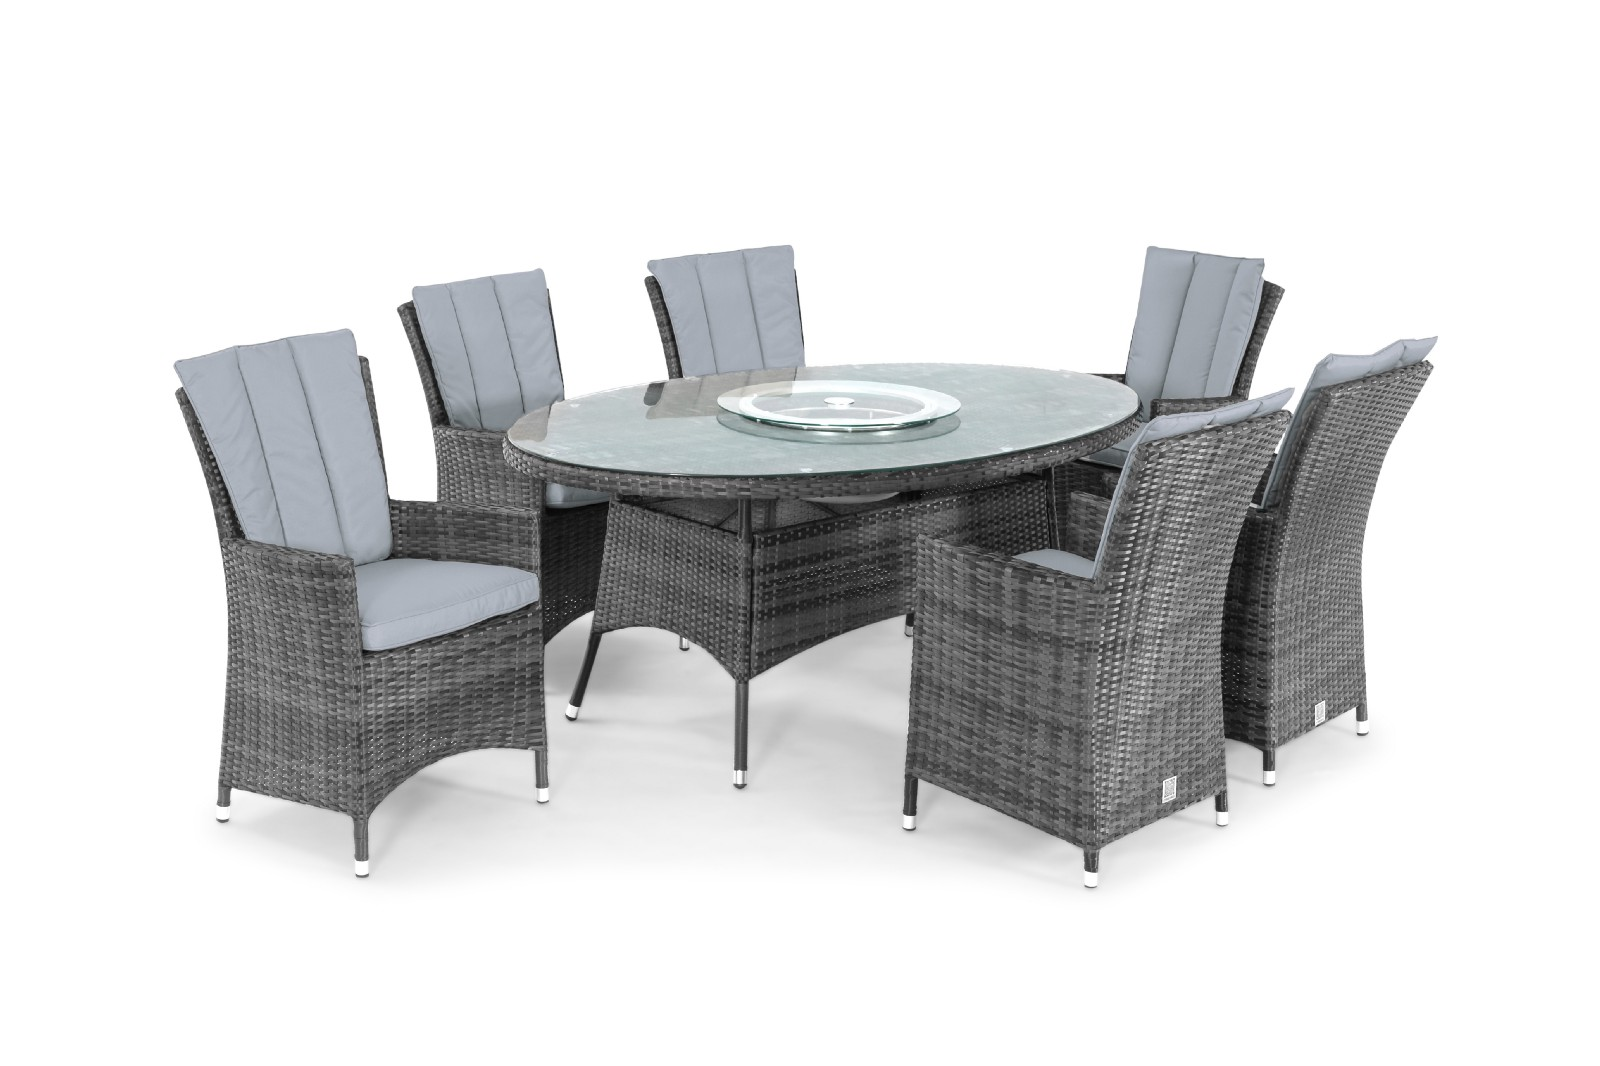 Maze Rattan 6 Seat Round Dining Set With Ice Bucket Offer By  Rattanfurniturefairy.co.uk